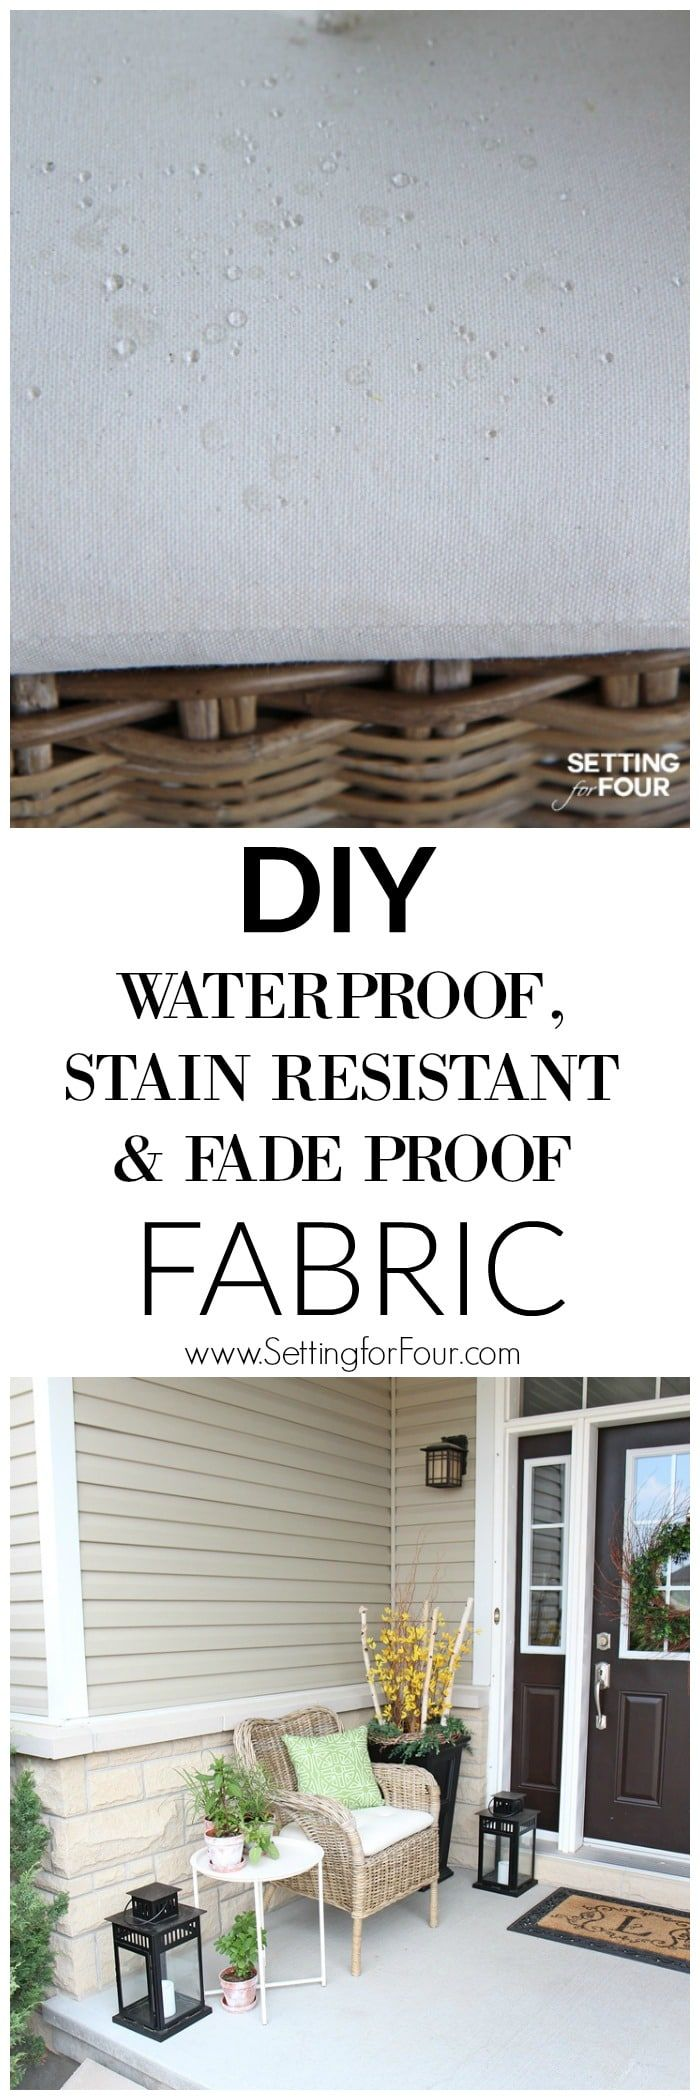 Turn indoor cushions into outdoor cushions with this AMAZING water seal spray! Makes the fabric waterproof and fadeproof. You have to try this easy DIY project!